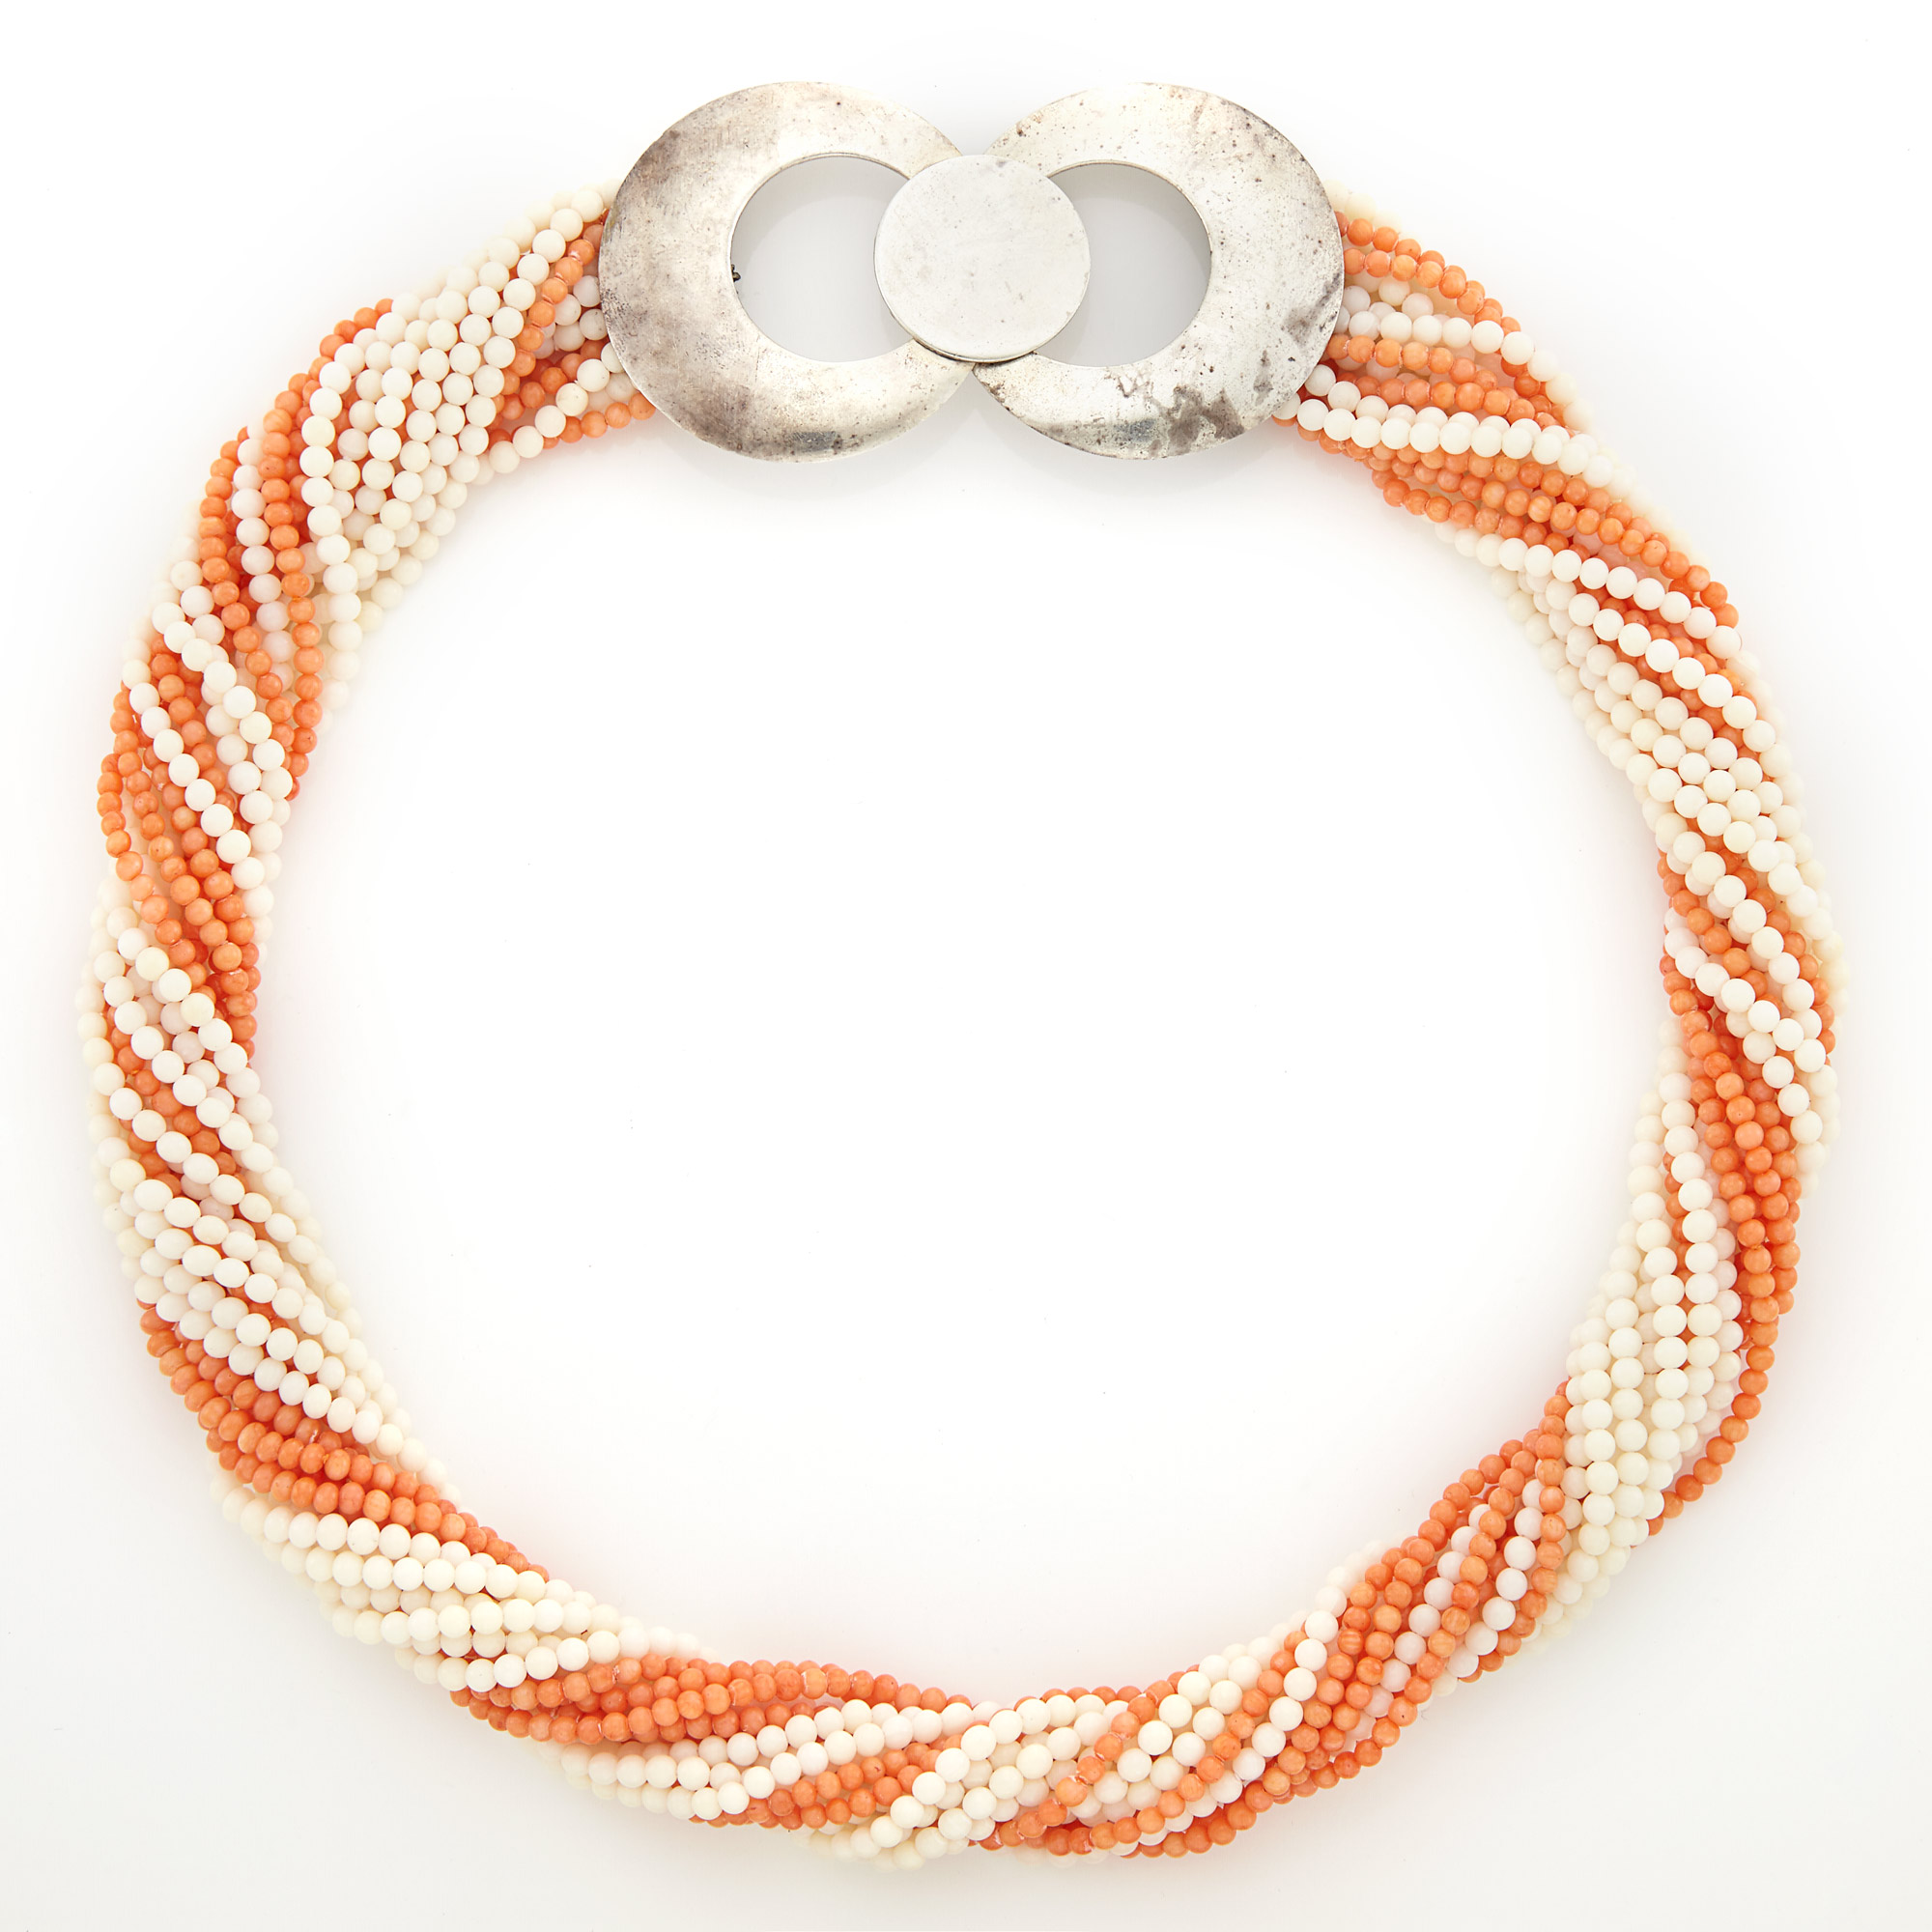 Lot image - Multistrand Orange and White Coral Torsade Necklace with Silver Clasp